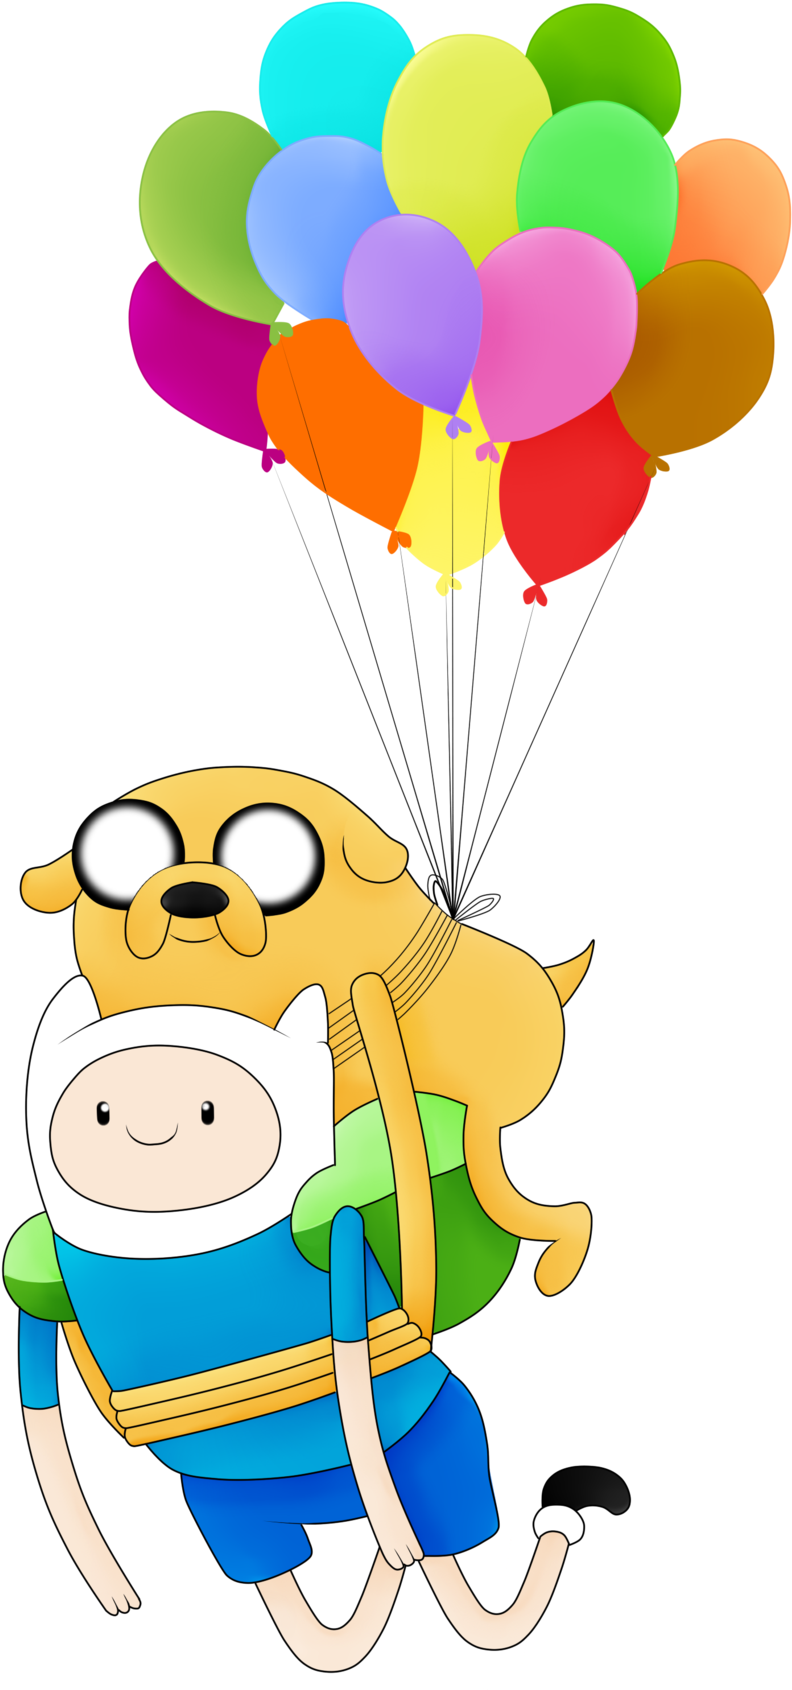 Adventure Time Finn Clipart - Adventure Time Finn And Jake Png (1280x1707), Png Download